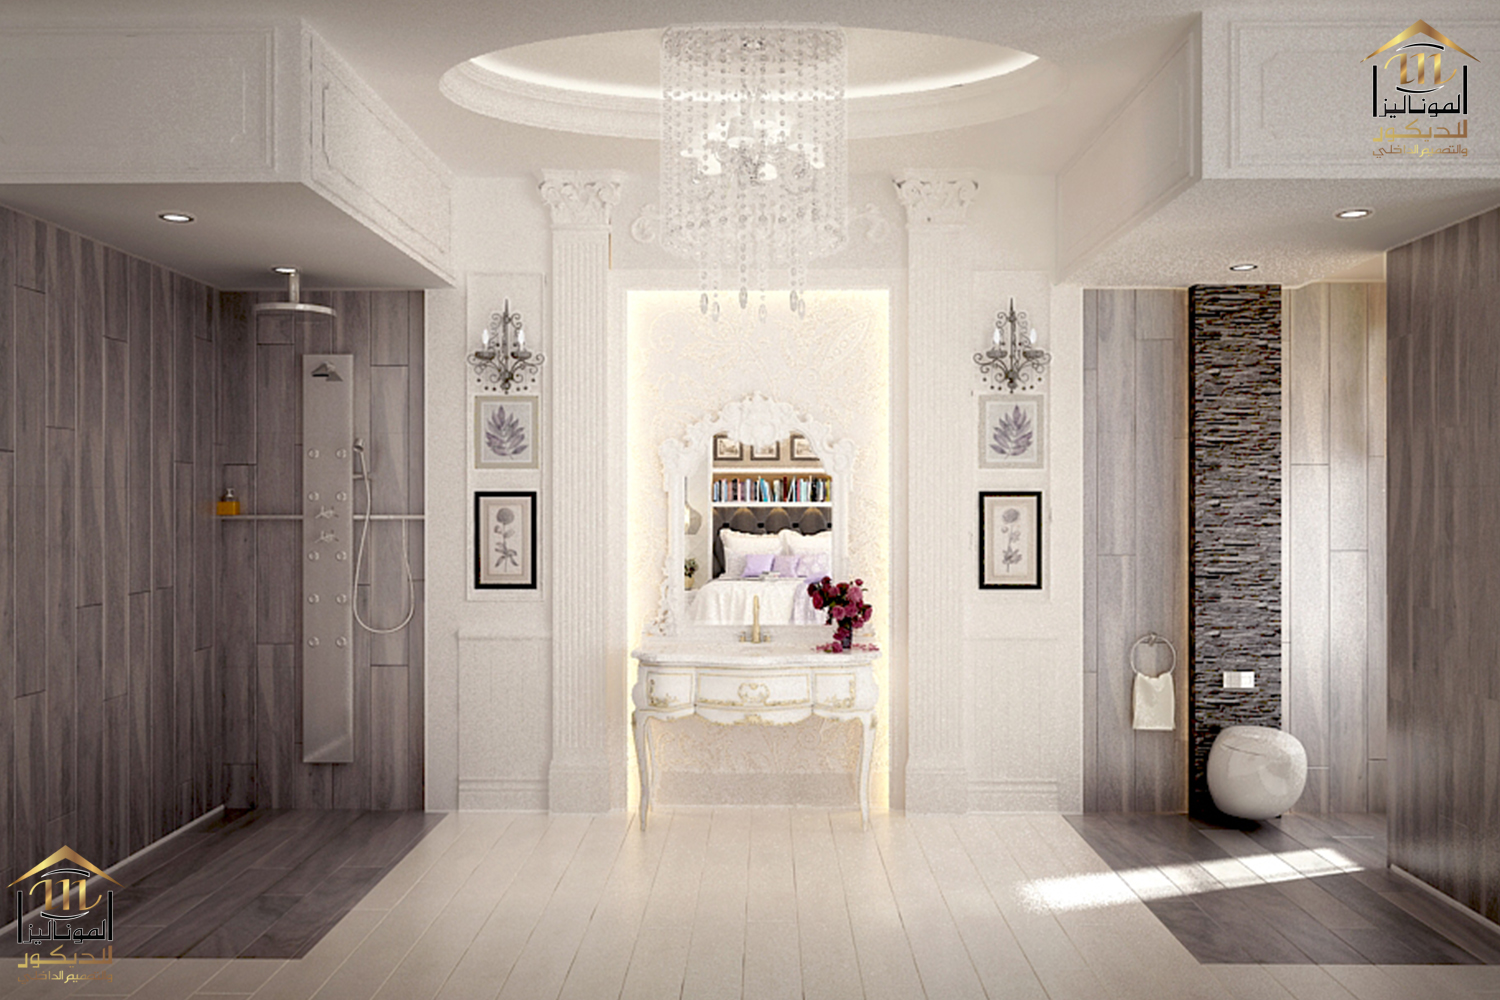 almonaliza group_decoration&interior design_bathrooms (24).jpg